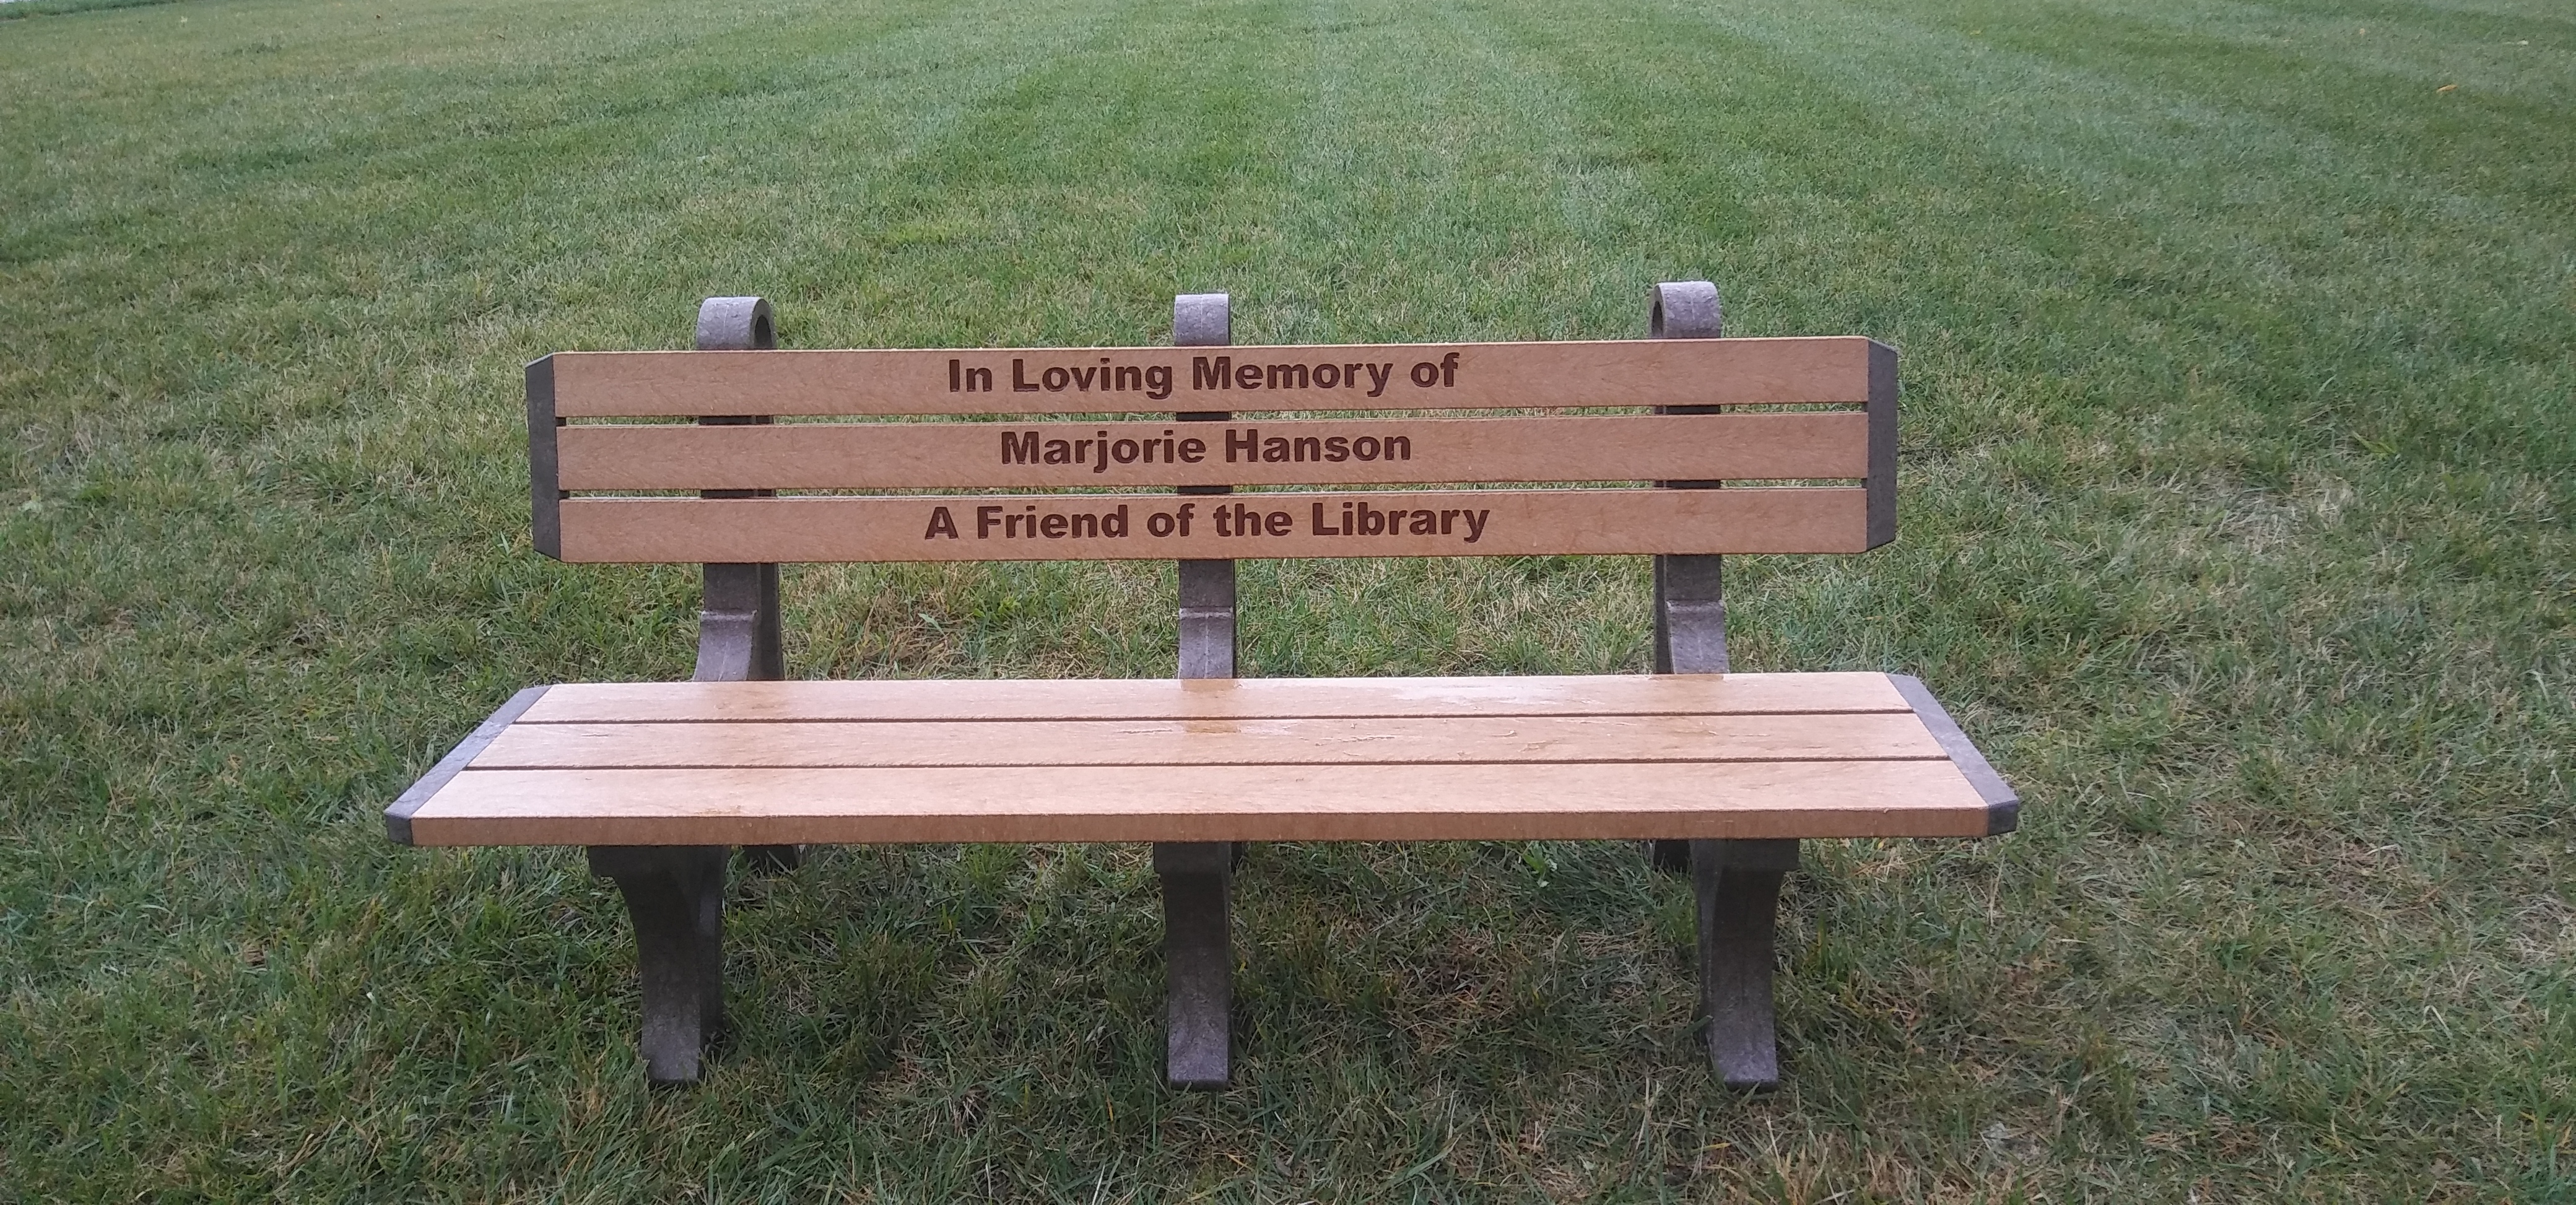 The Library has a new Memorial bench in place on our lawn, thanks to a donation from Stan Hanson. The bench is an additon to the first one the library received as a donation from the Friends of the Library two years ago.